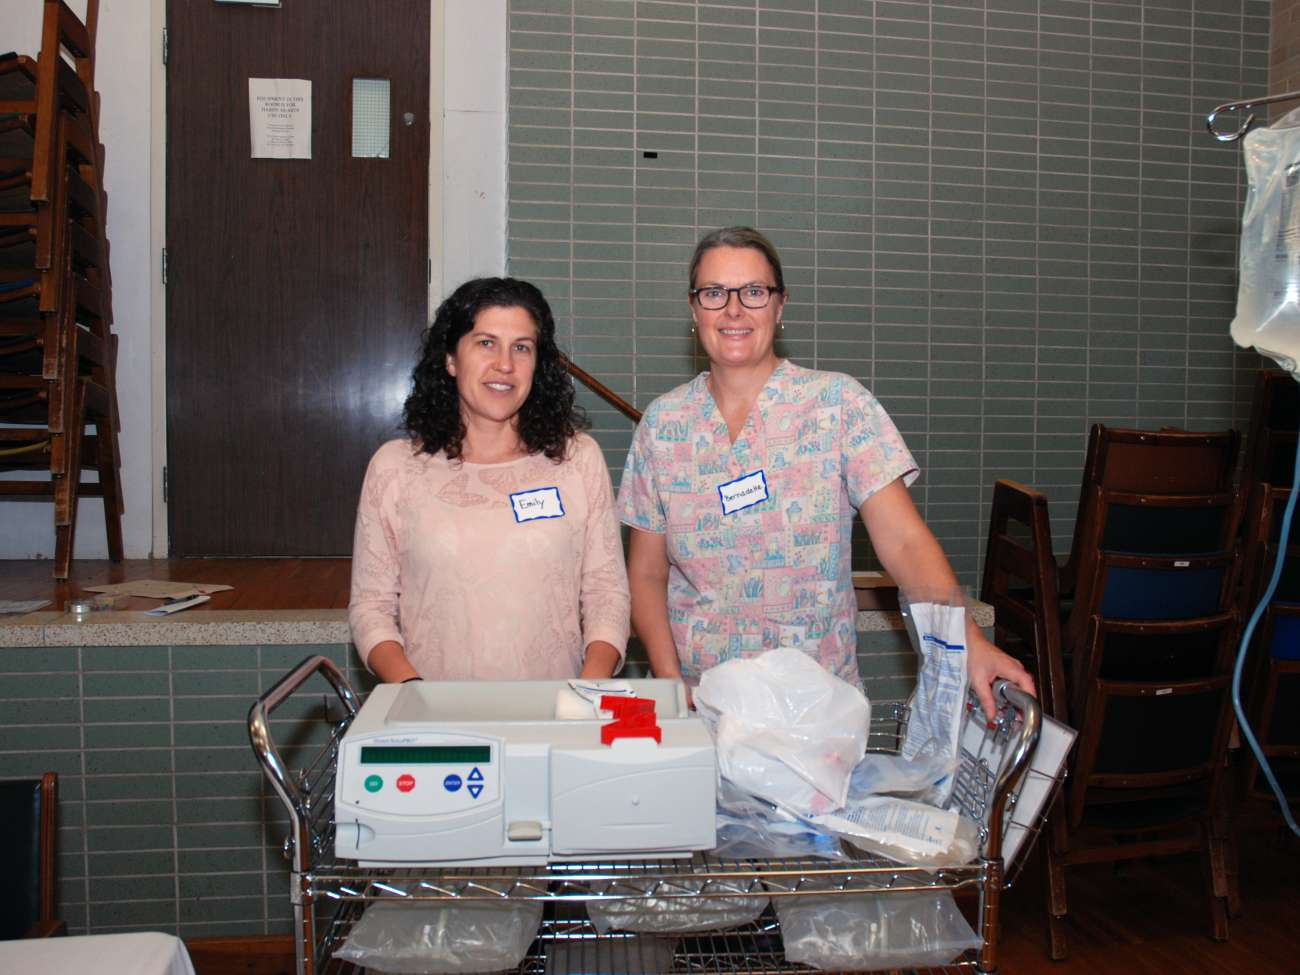 Registered nurses Emily Hurst and Bernadette Mandl who work in peritoneal dialysis